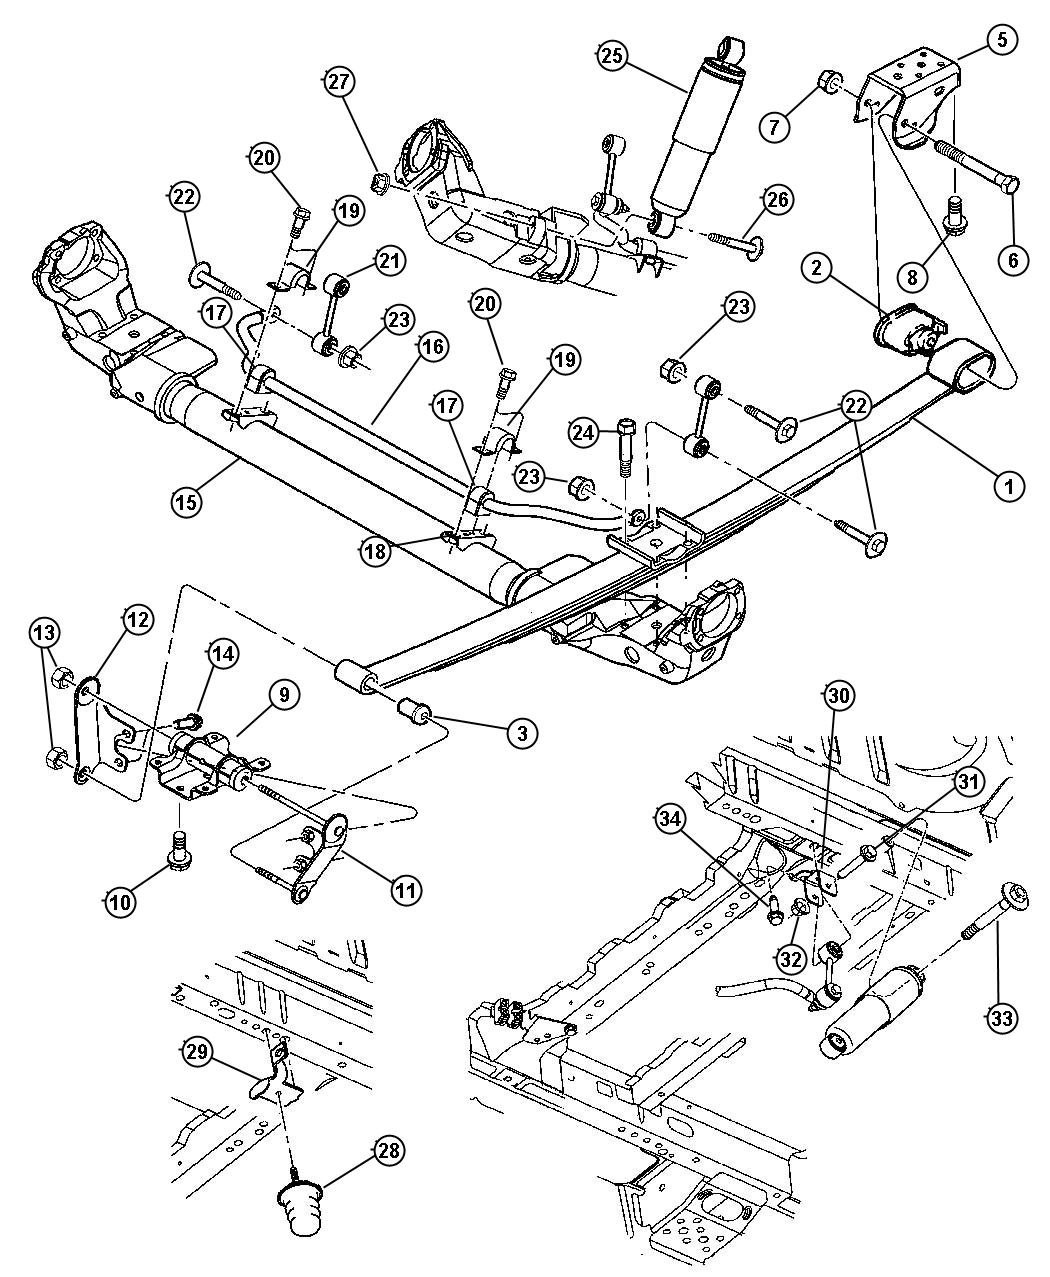 dodge ram front suspension diagram bmw can bus wiring coil spring rear